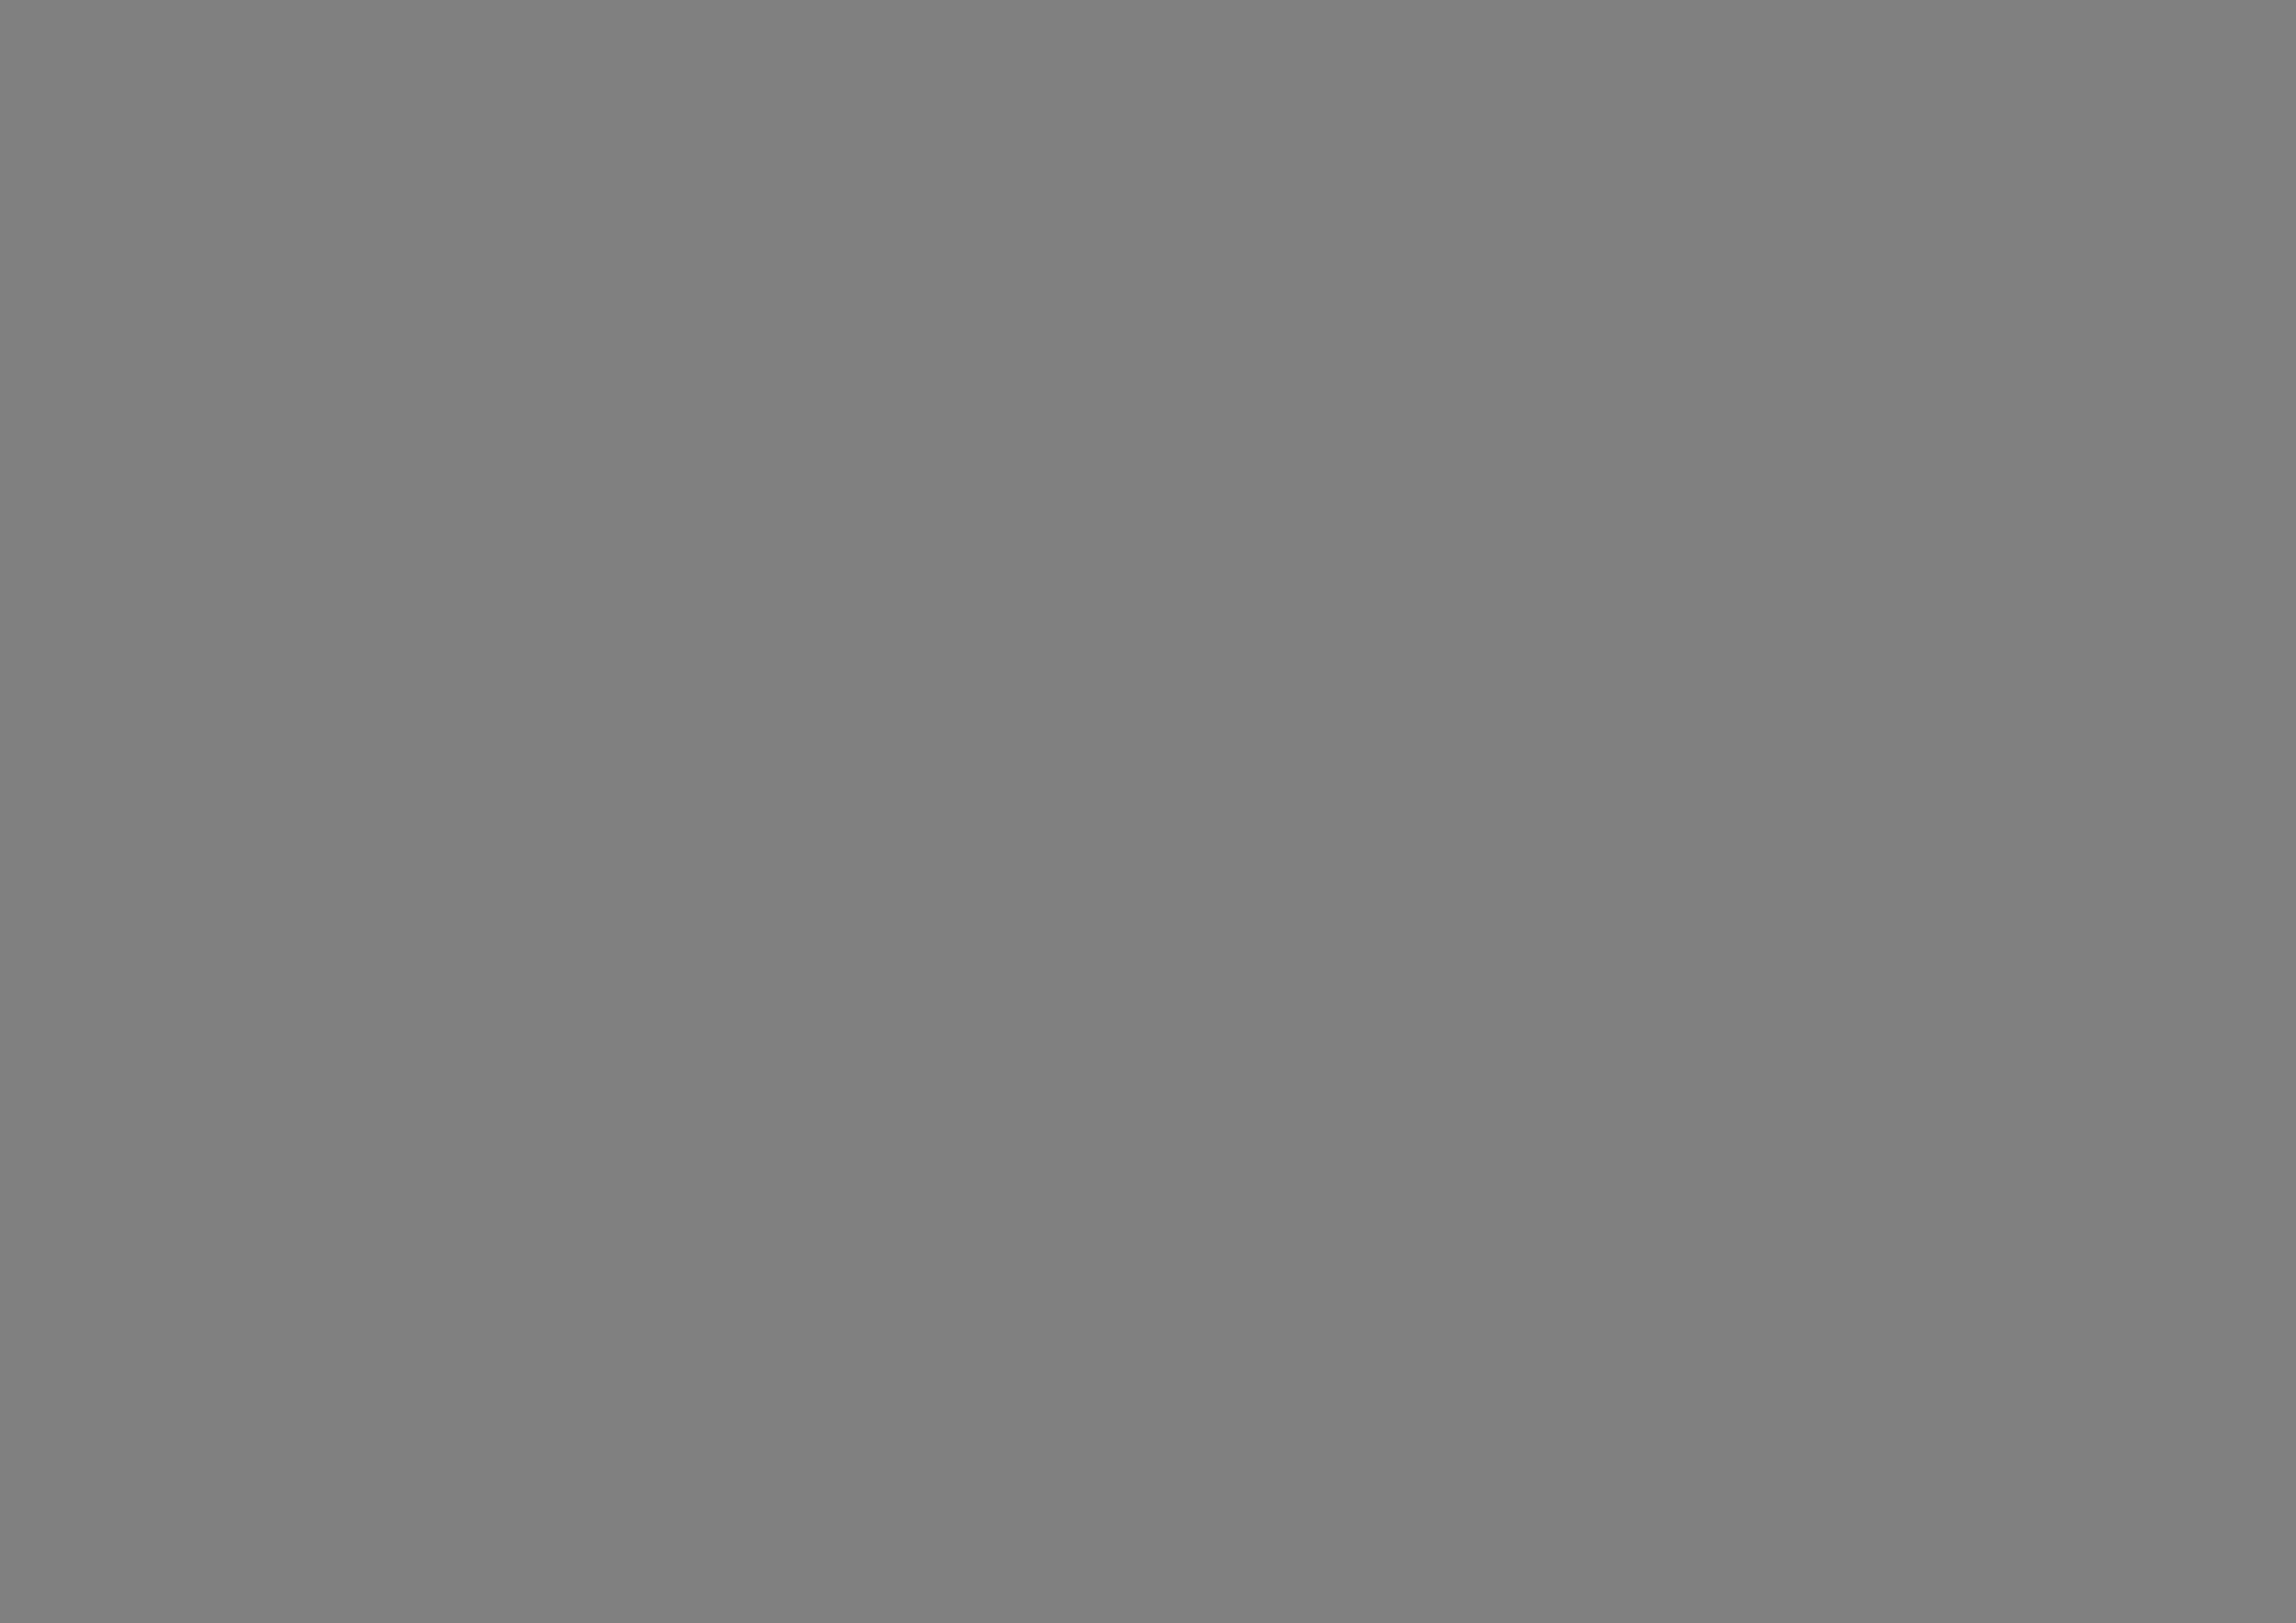 3508x2480 Gray Web Gray Solid Color Background